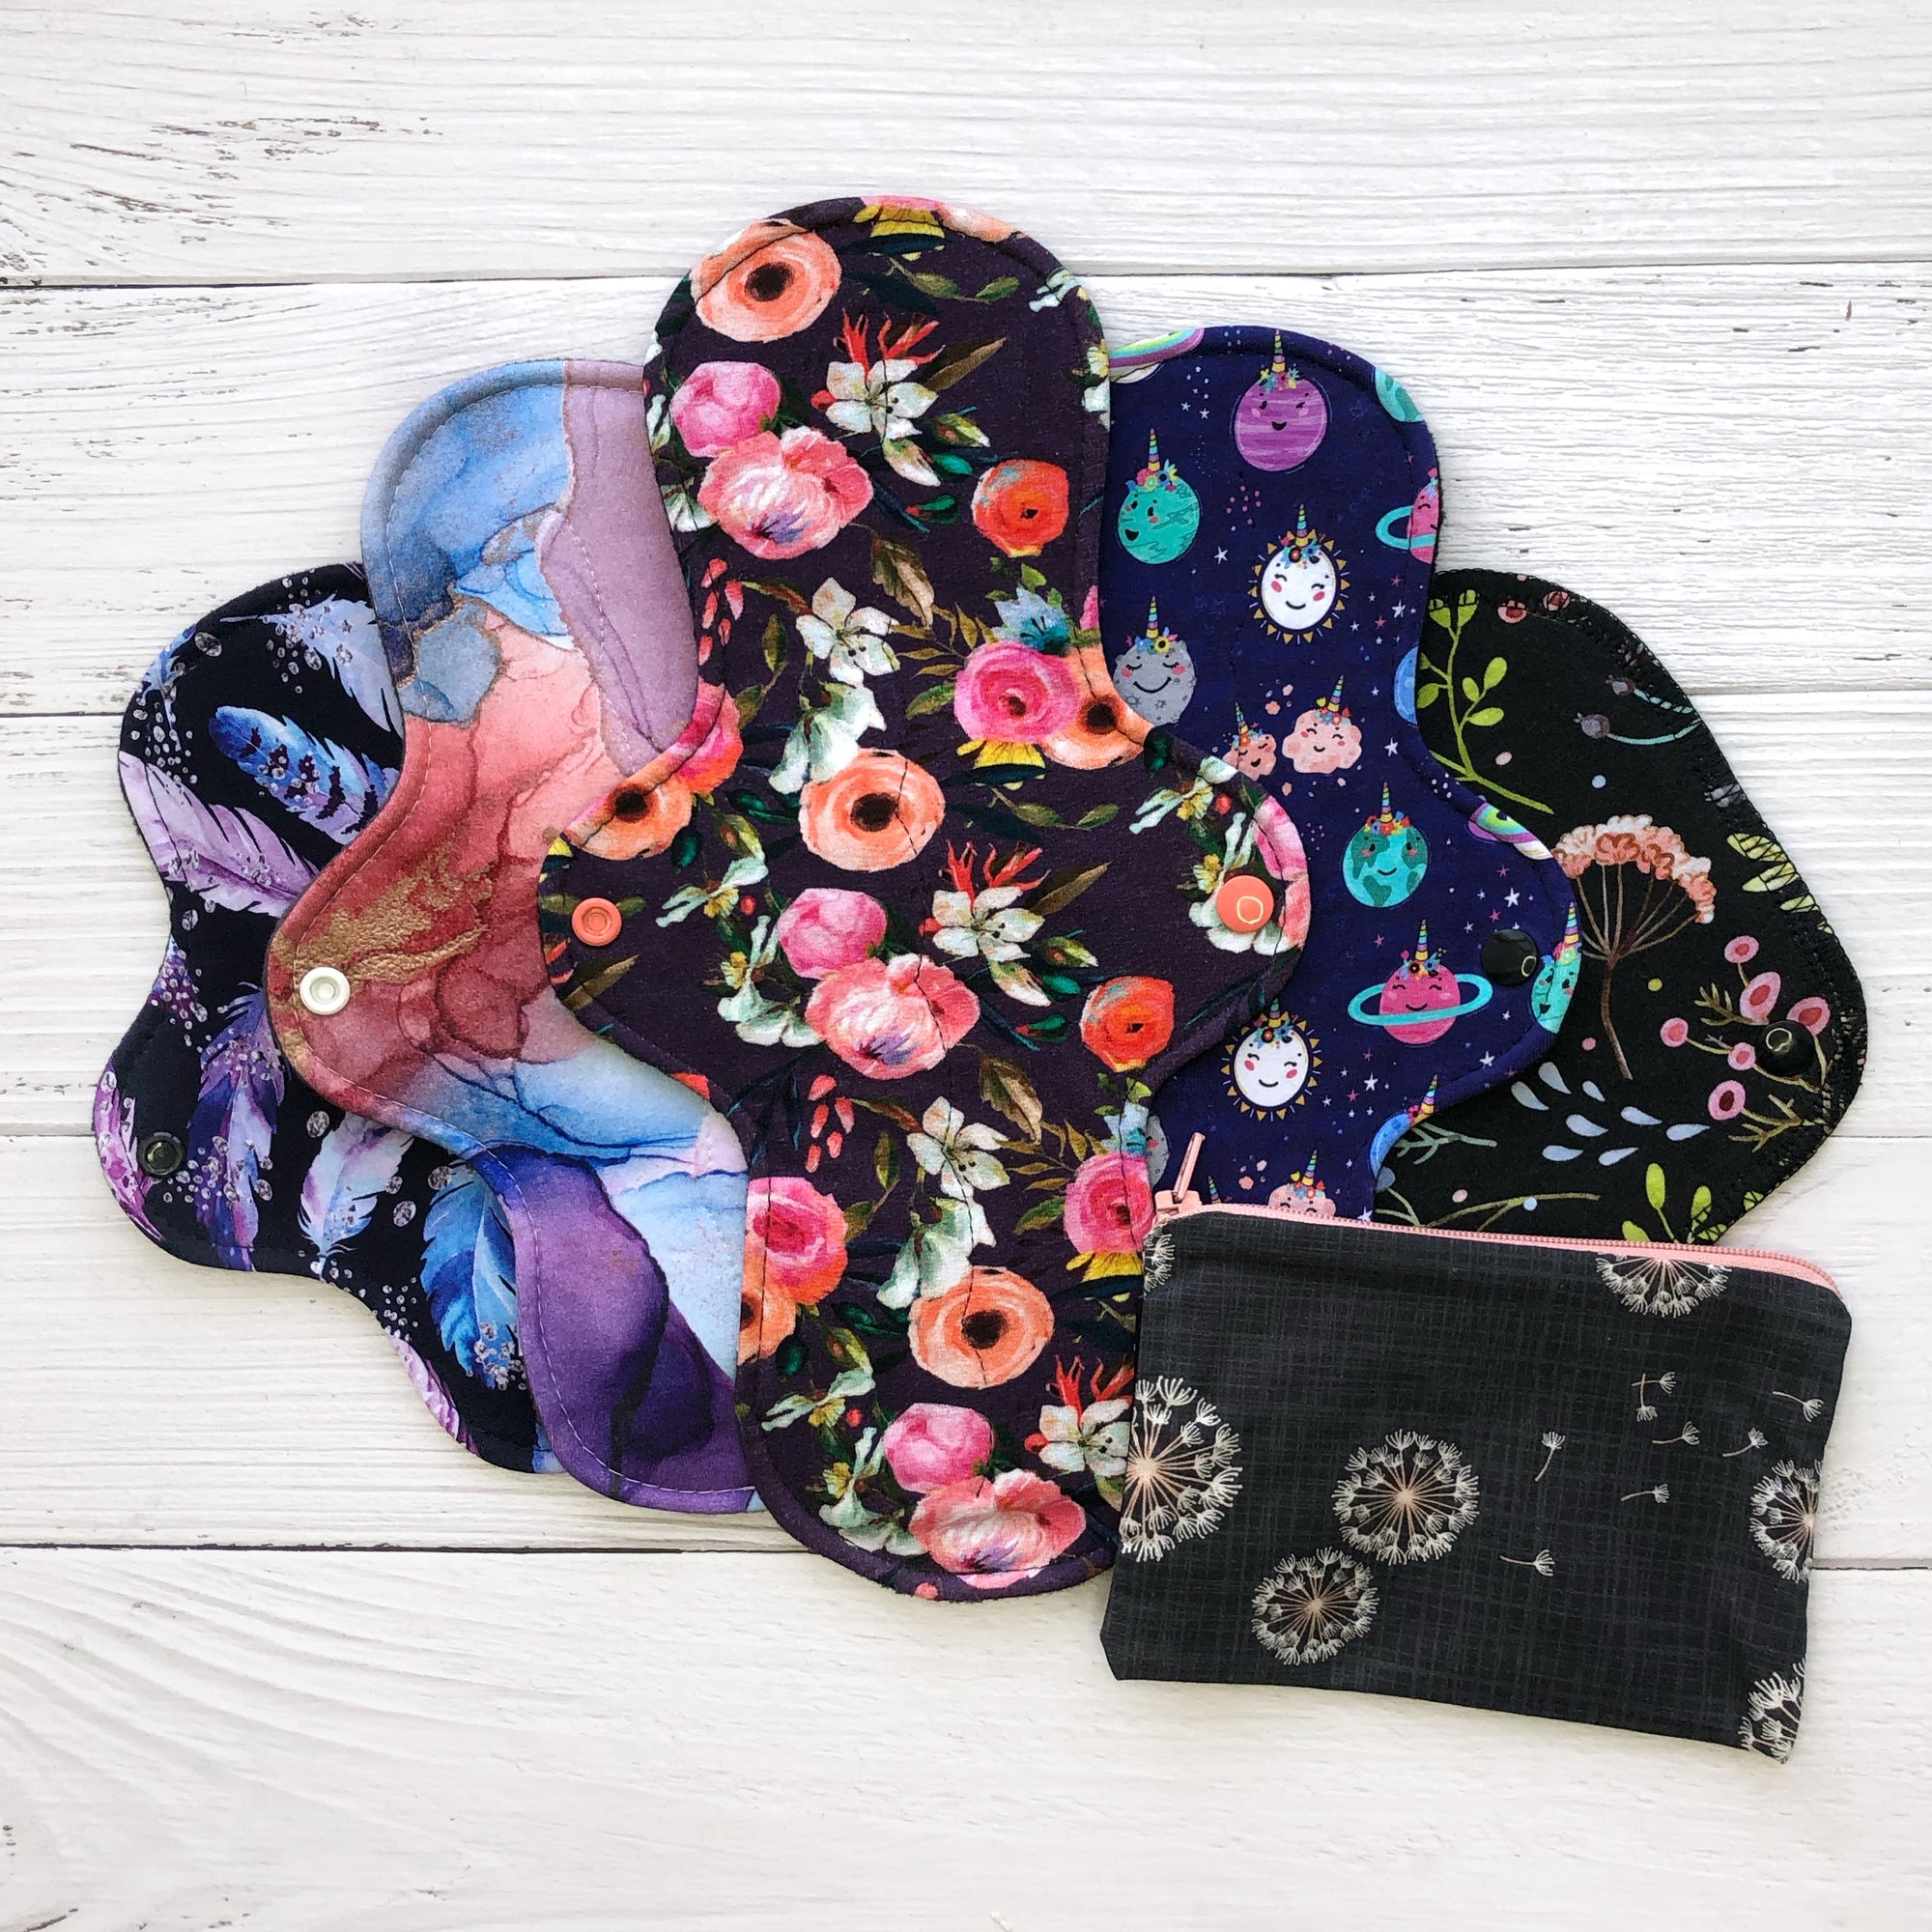 basic reusable pad starter set with 5 colourful reusable pads in floral and other prints and a dandelion print small wetbag